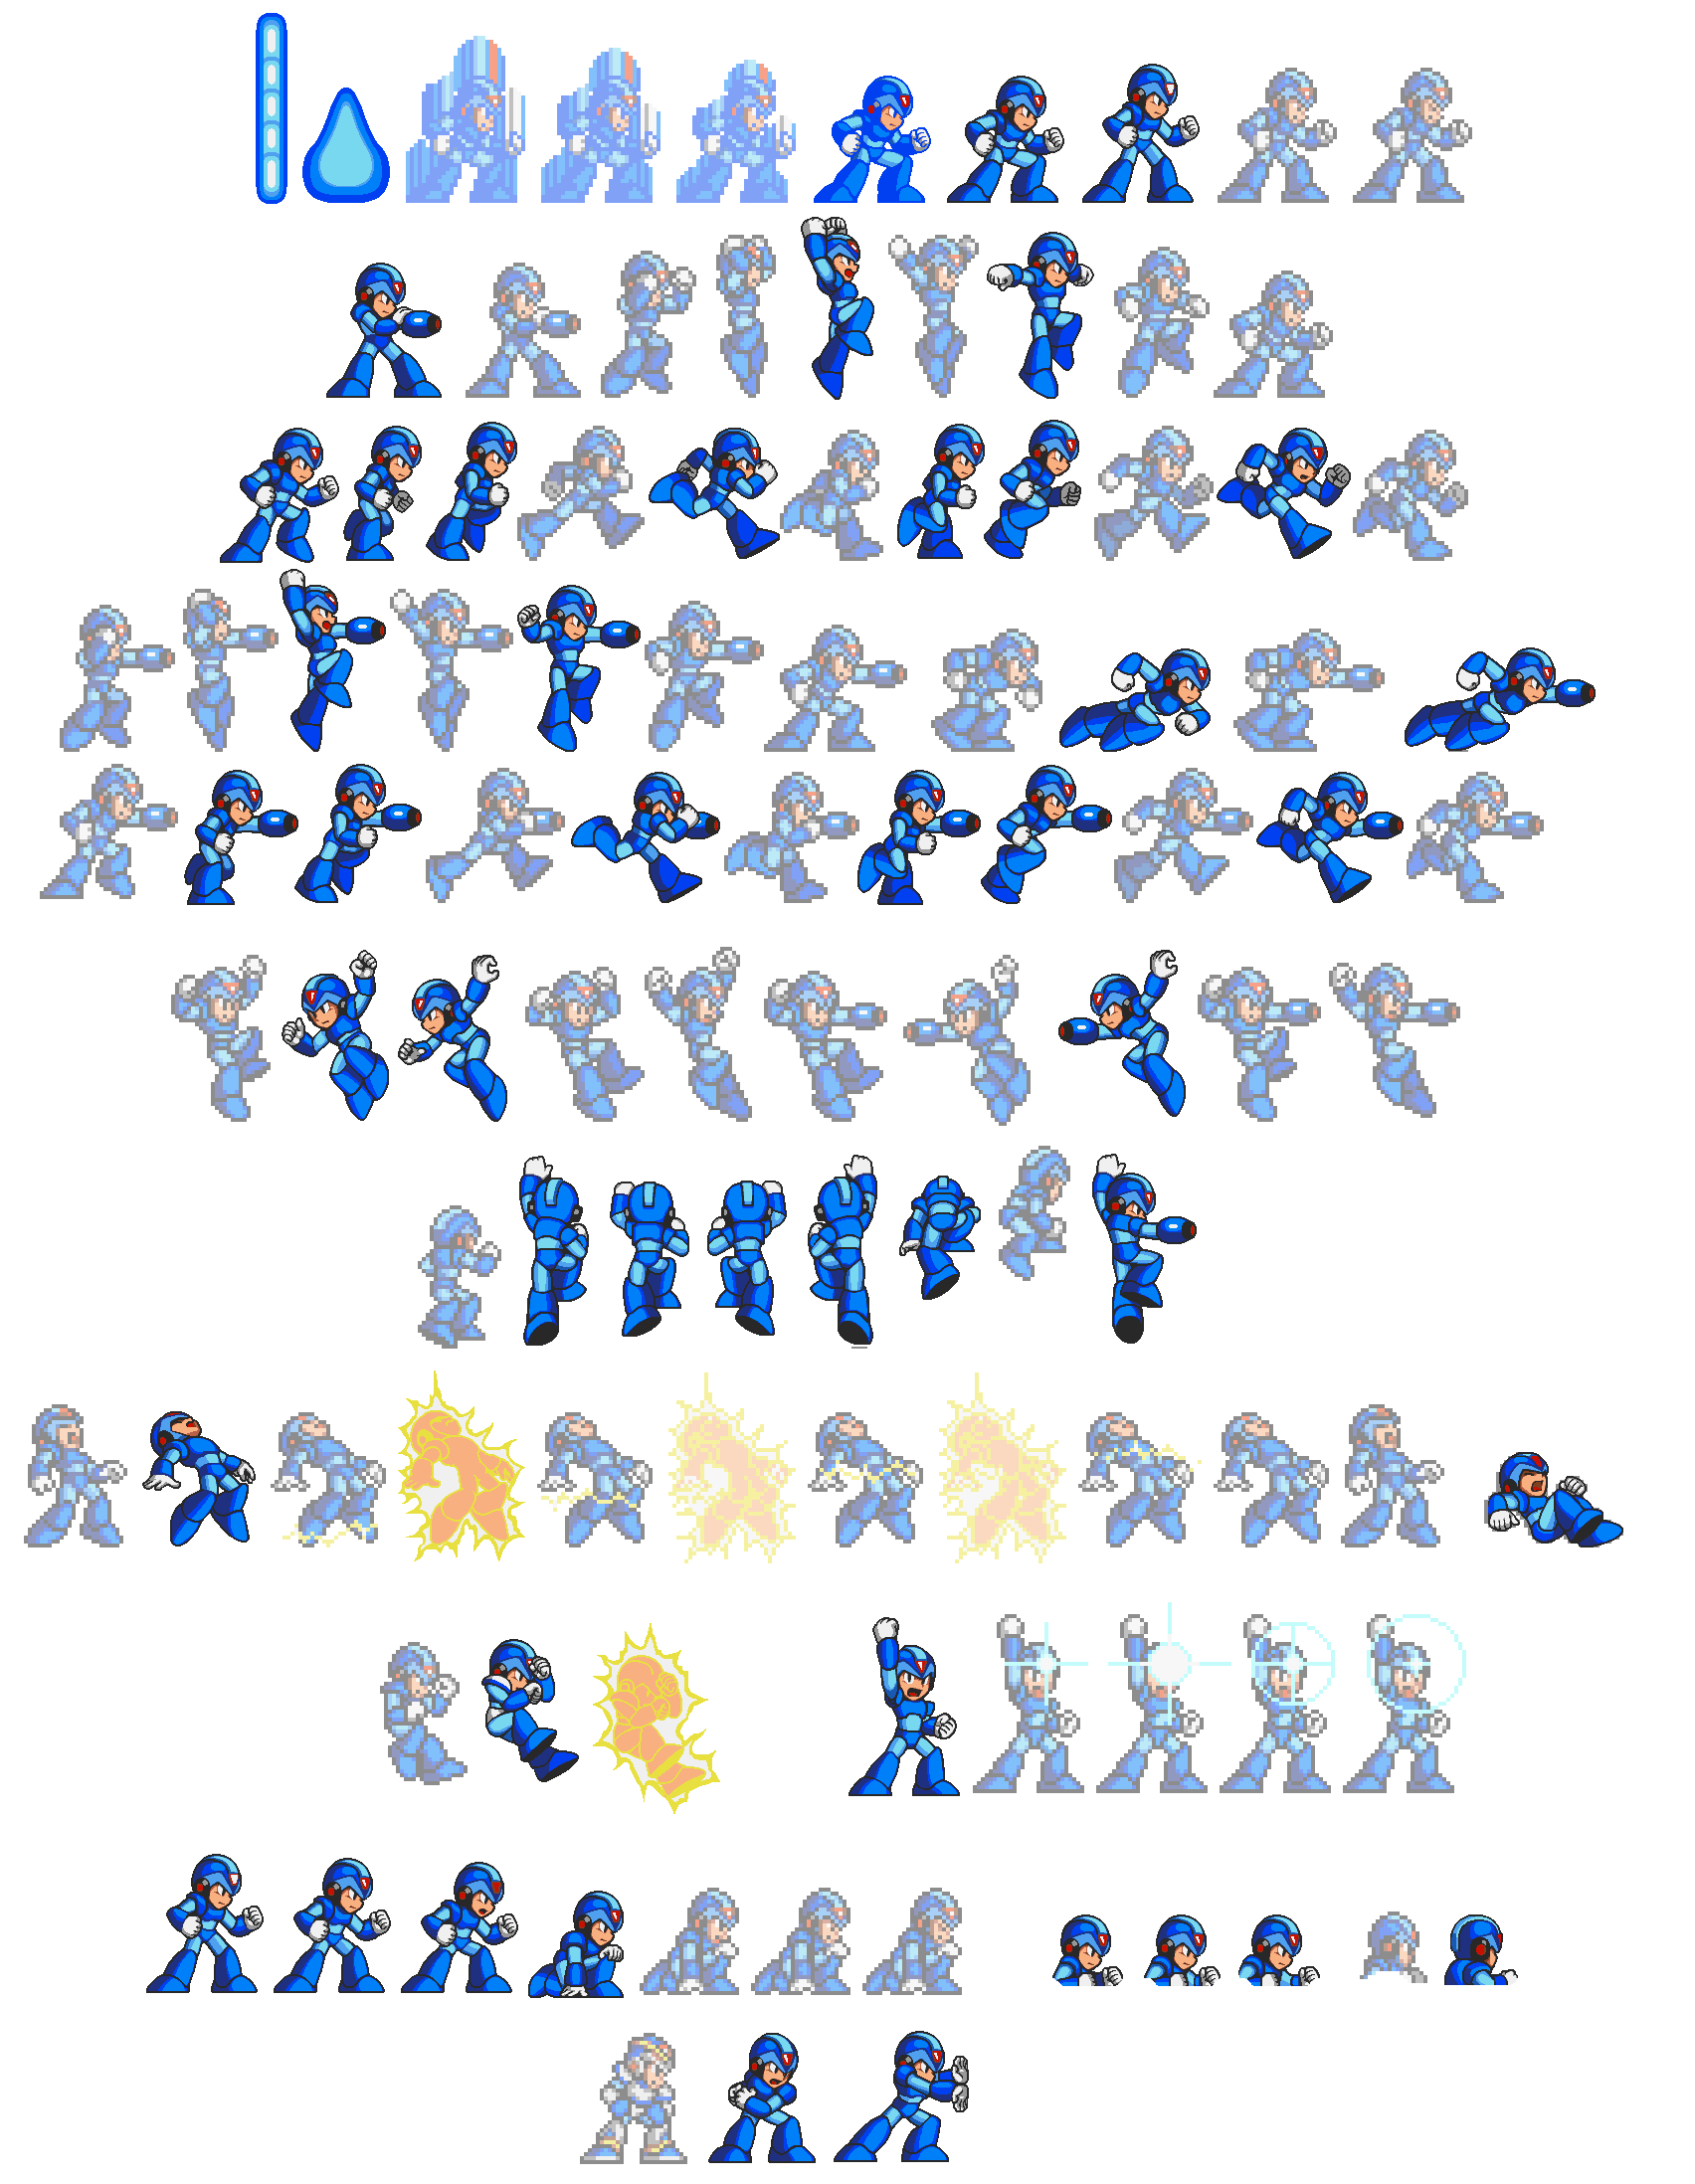 Mega man sprite png. Megaman x movement list